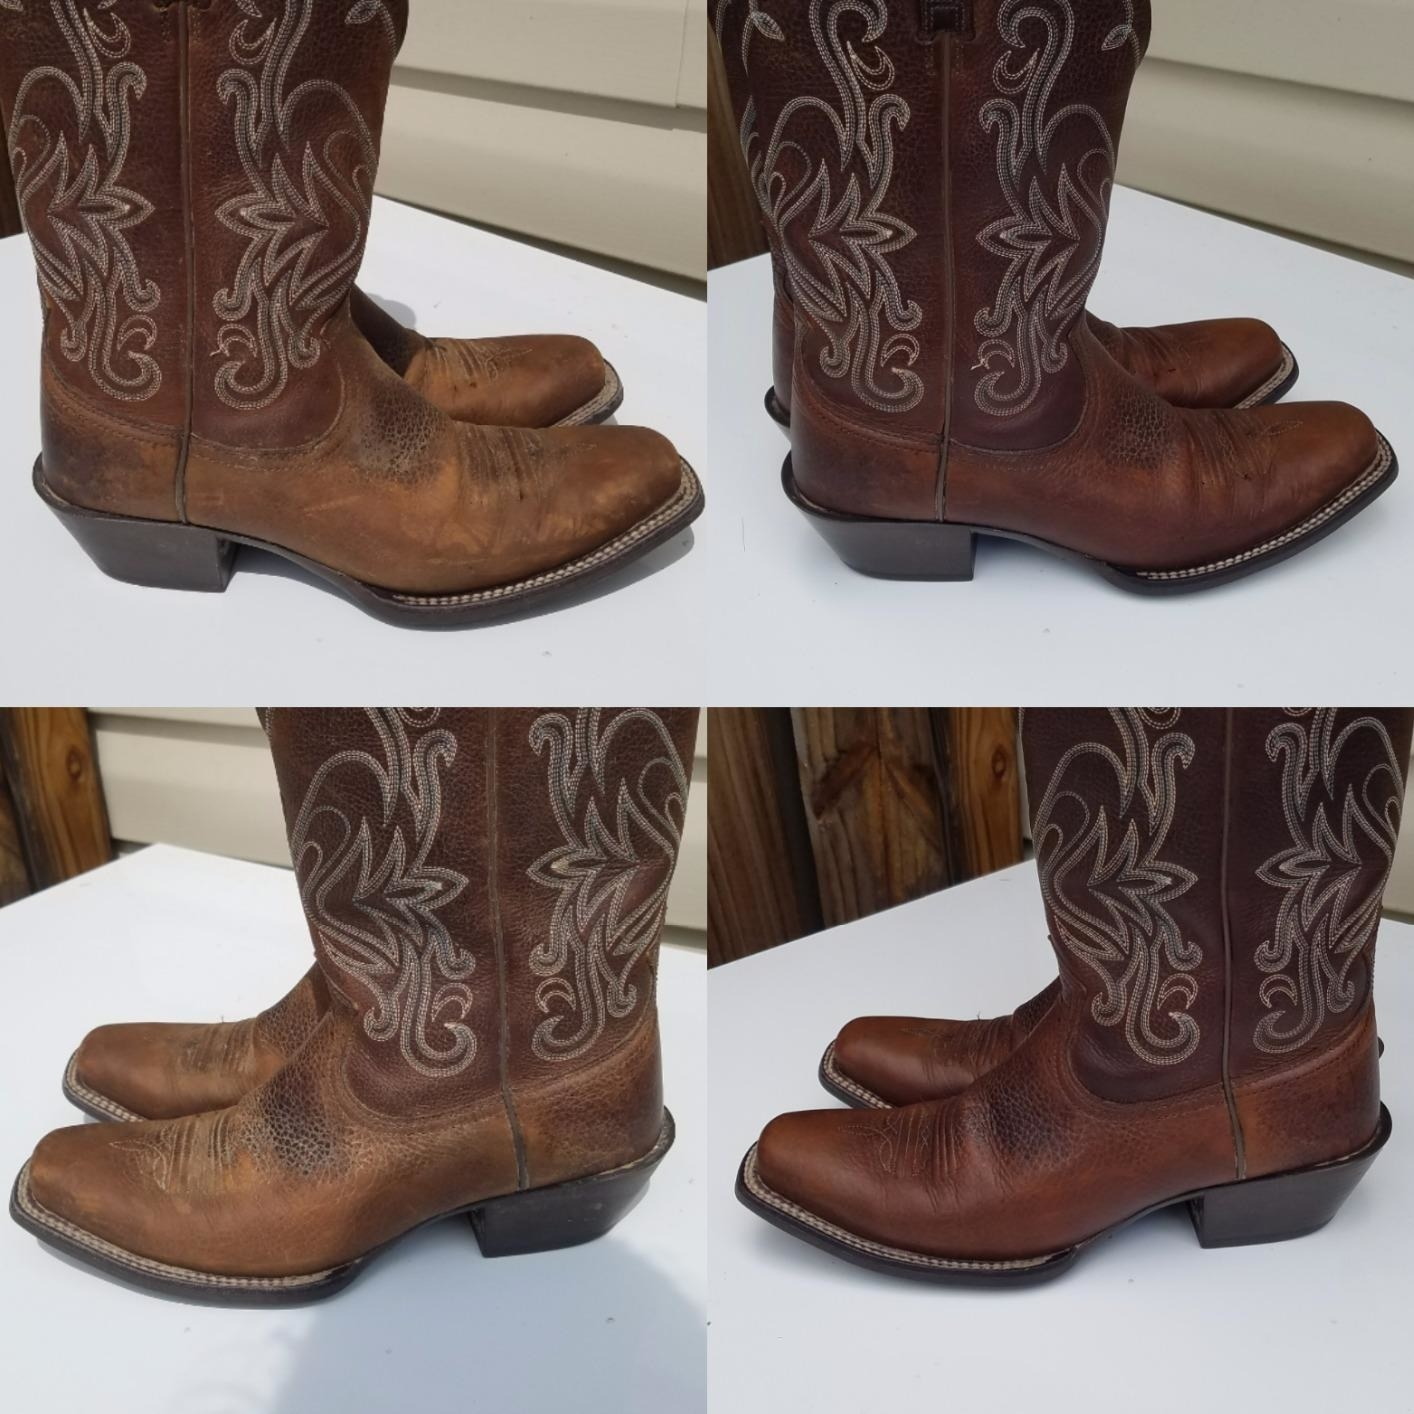 Leather cowboy boots before, looking faded, and after, with their original rich leather tone restored